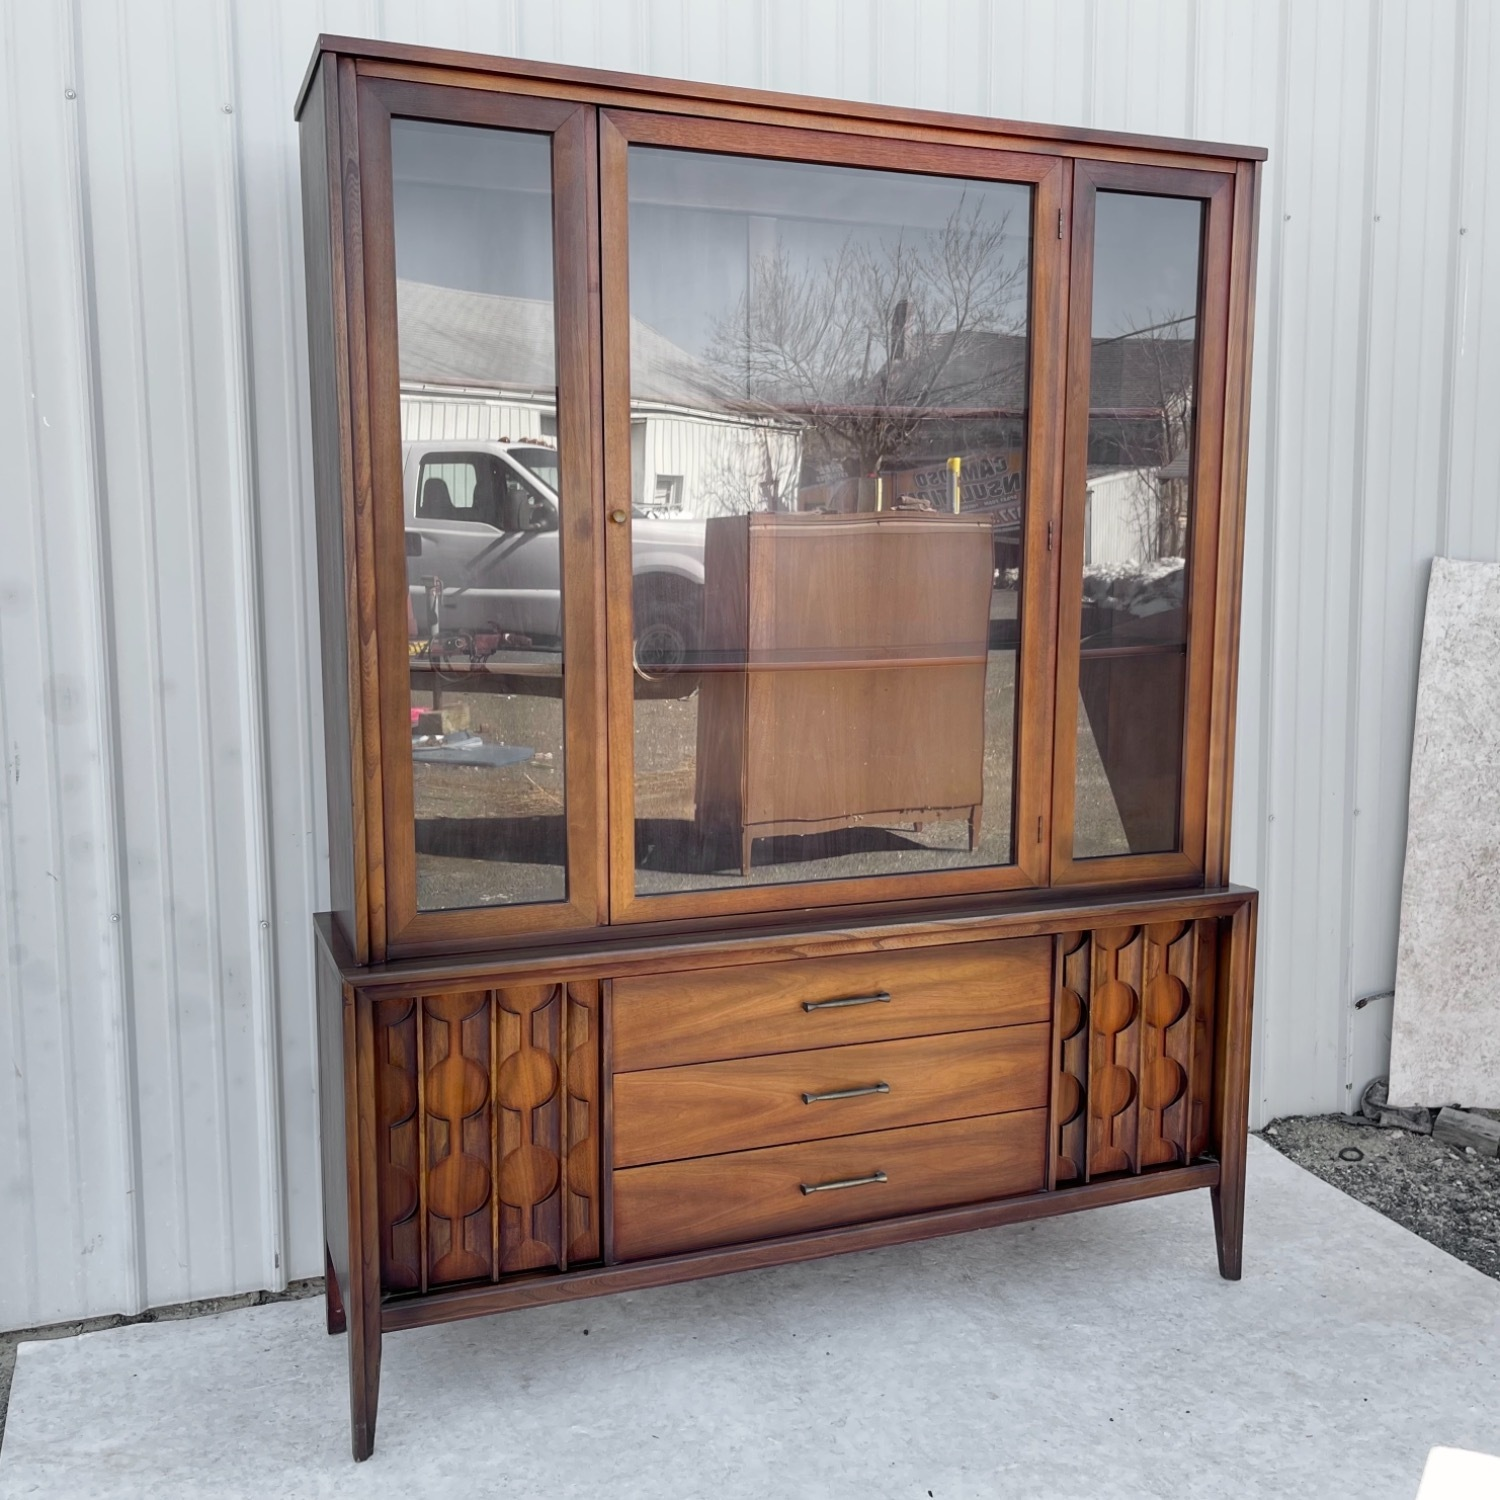 Mid-Century Modern Sideboard With Cabinet - image-1